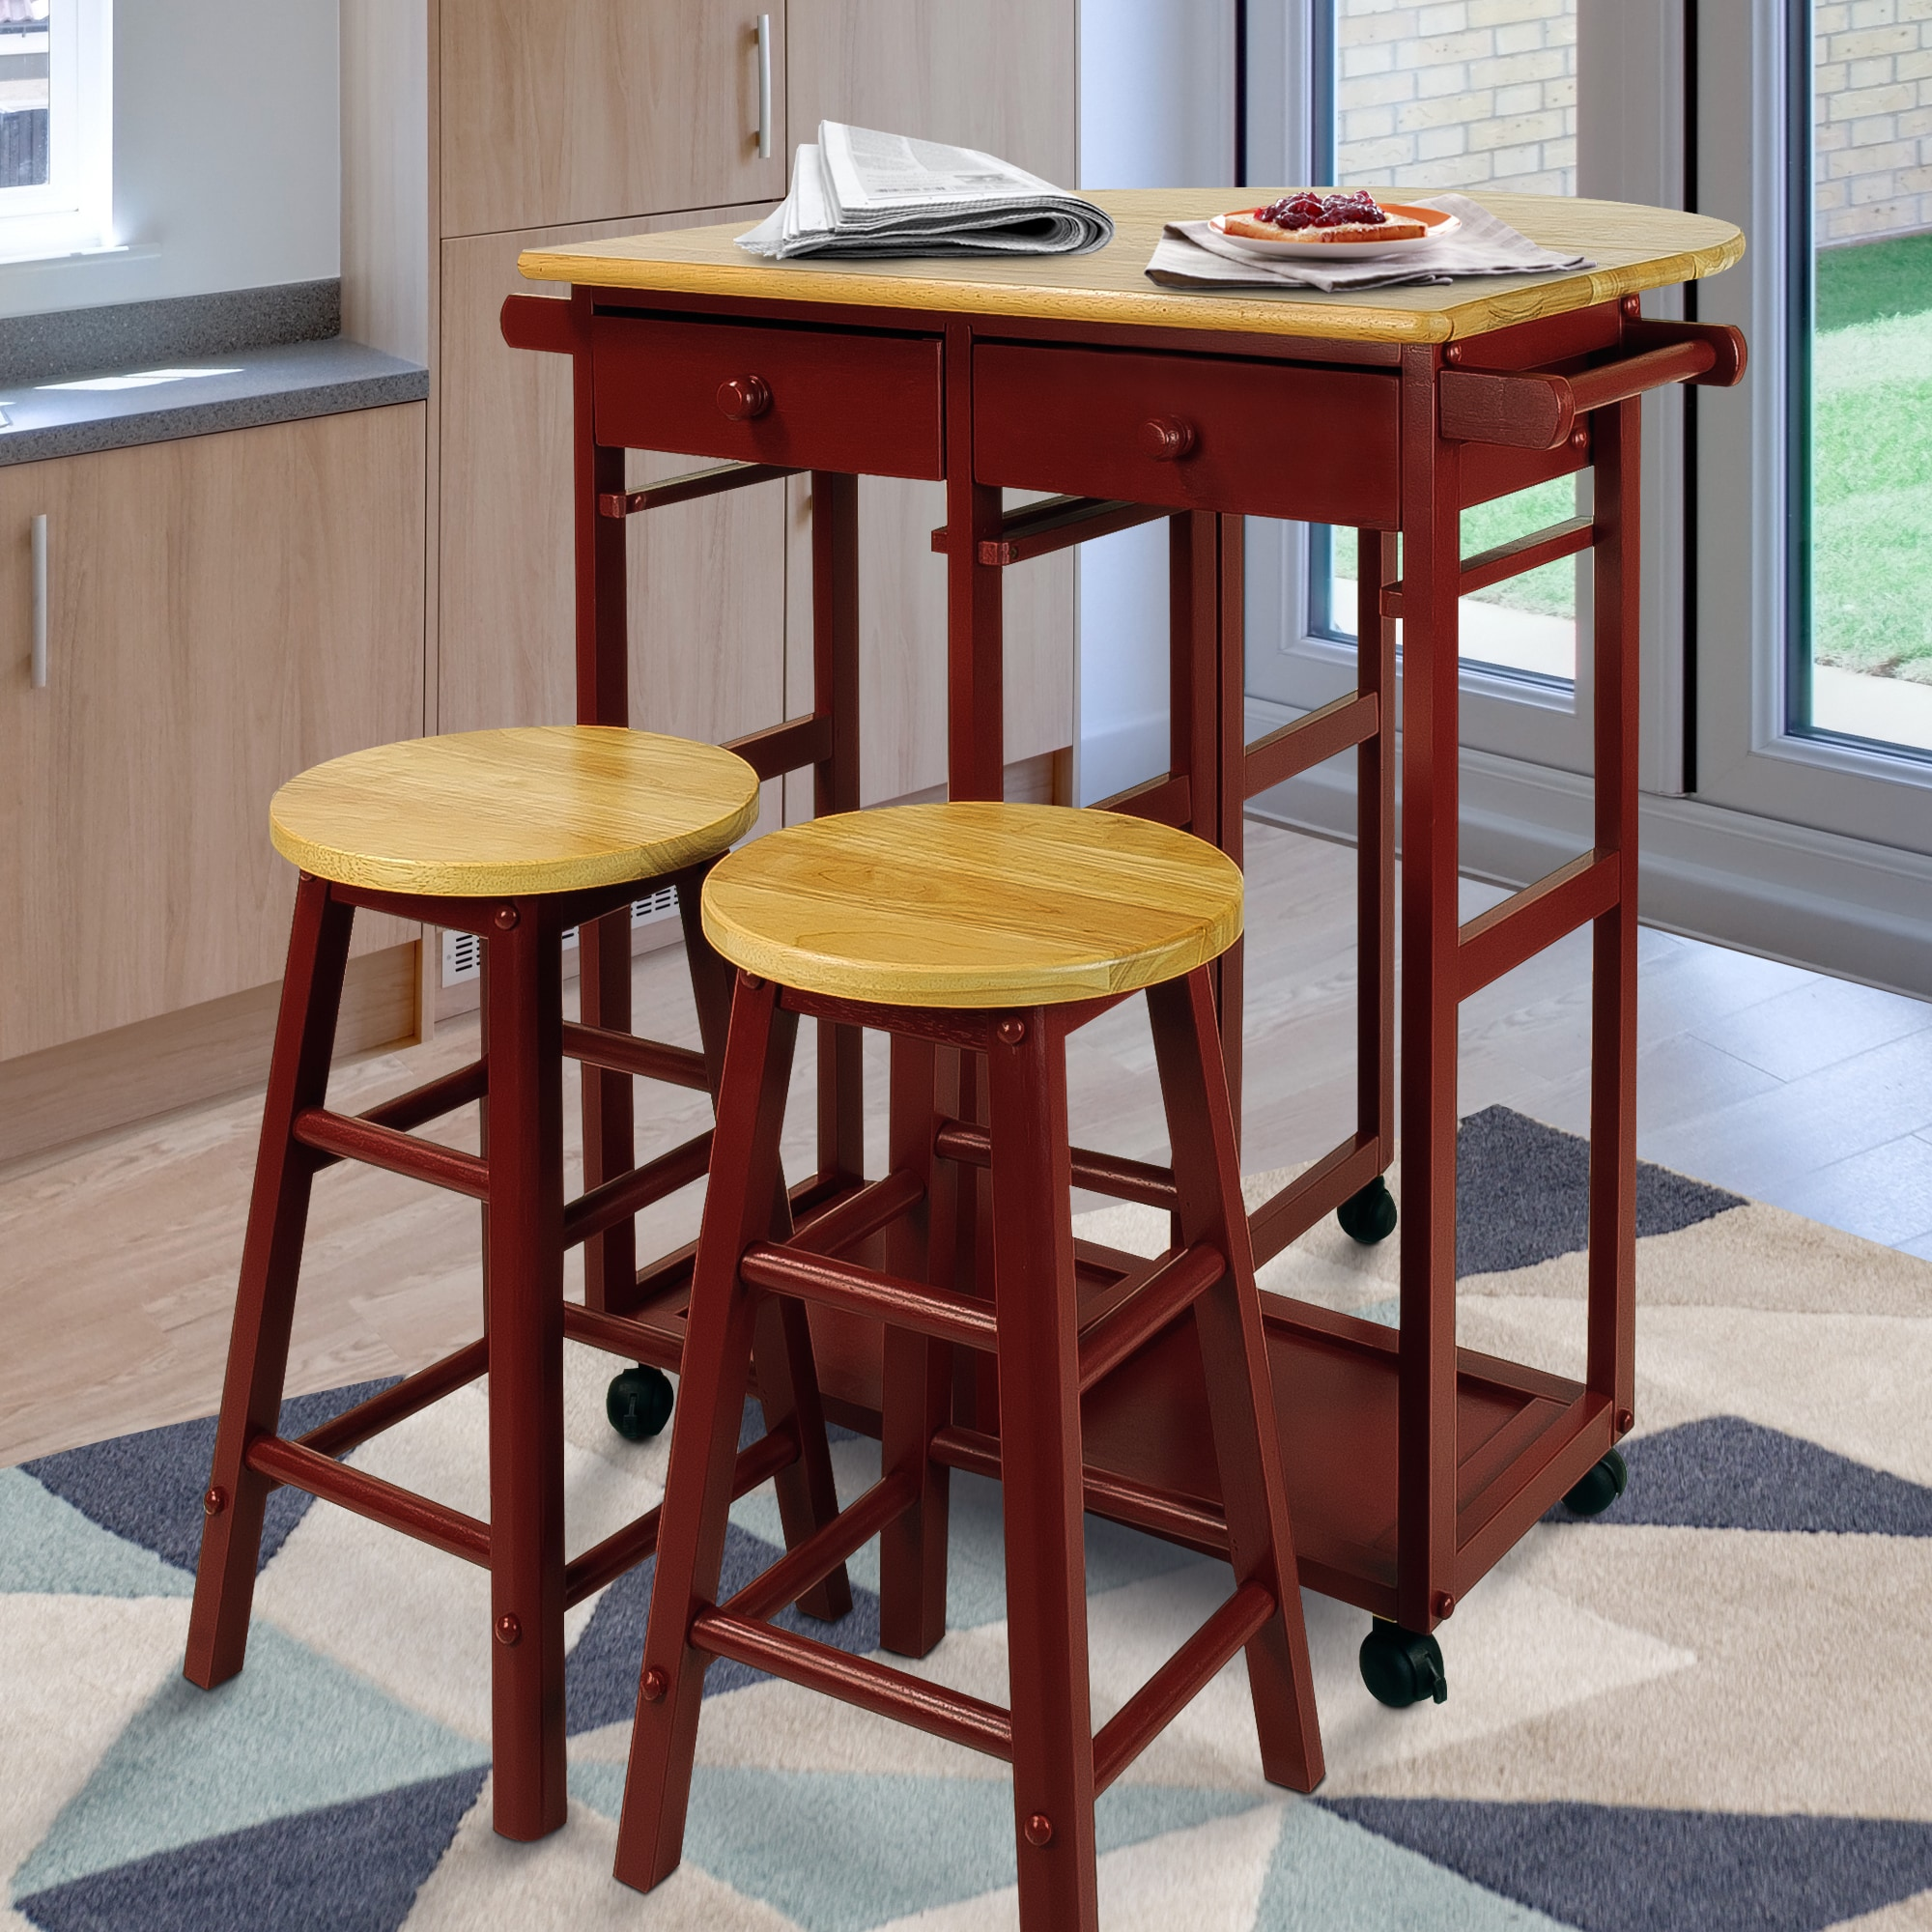 Kitchen Table With Chairs On Wheels: Drop Leaf Table Kitchen Breakfast Cart Dining Room Chairs